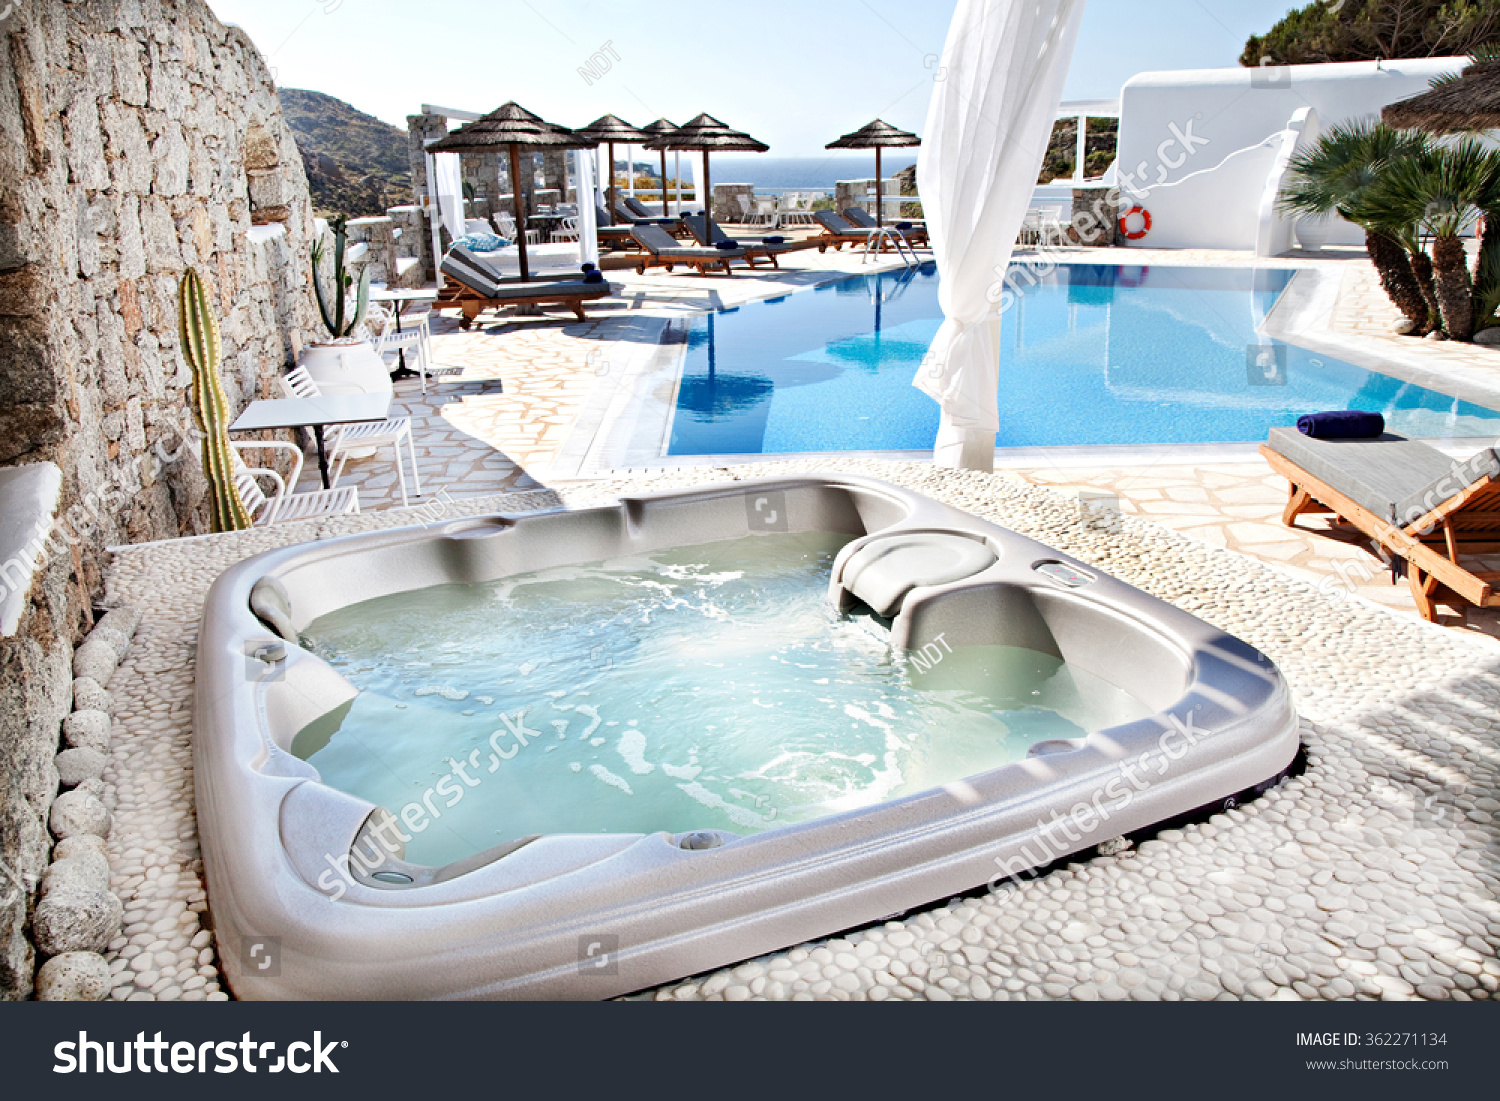 jacuzzi with a swimming pool in background stock photo. Black Bedroom Furniture Sets. Home Design Ideas